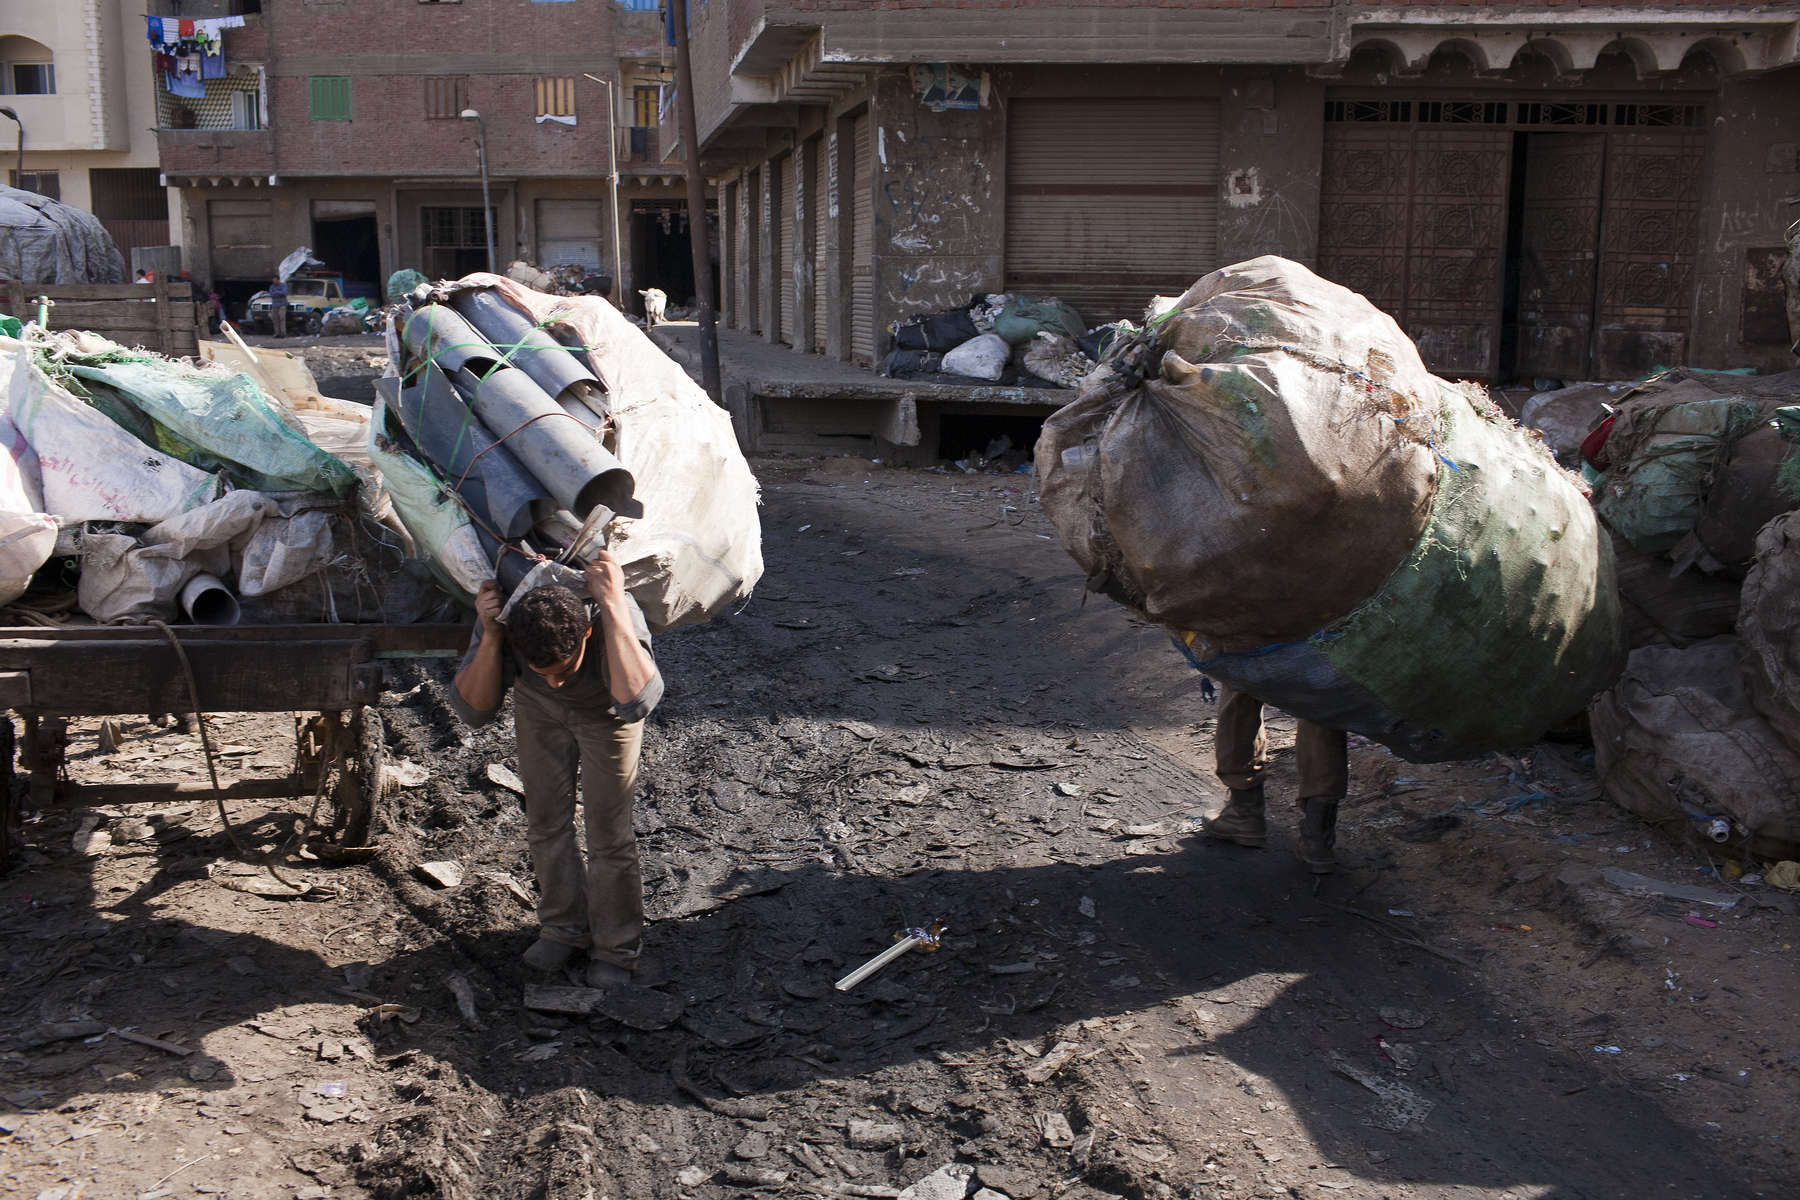 "Zabaleen carry recycled garbage through a street in Moqqatam.Moqqatam is a suburb on the edge of Cairo and home to a people known as the Zabaleen, said to be the world's greatest waste recyclers. The Zabaleen, which means plainly enough, ""the garbage collectors"", pick up around 4,000 tons of Cairo's waste each day. American researchers have shown that the Zabaleen recycle 85% of this garbage into something useful: a higher rate than anywhere else on the planet. The men do two shifts leaving about 4am and again around 9am. The rubbish is taken back to Moqqatam for the women to sit in and sort through. The organic waste is fed to livestock (the Zabaleen are originally swine herders), the rest sorted for recycling. The future of the Zabaleen is uncertain: if the Cairo authorities get their way, this community of around 25,000 Coptic Christians living in a Muslim country will be gone, and with it, their unique lifestyle."